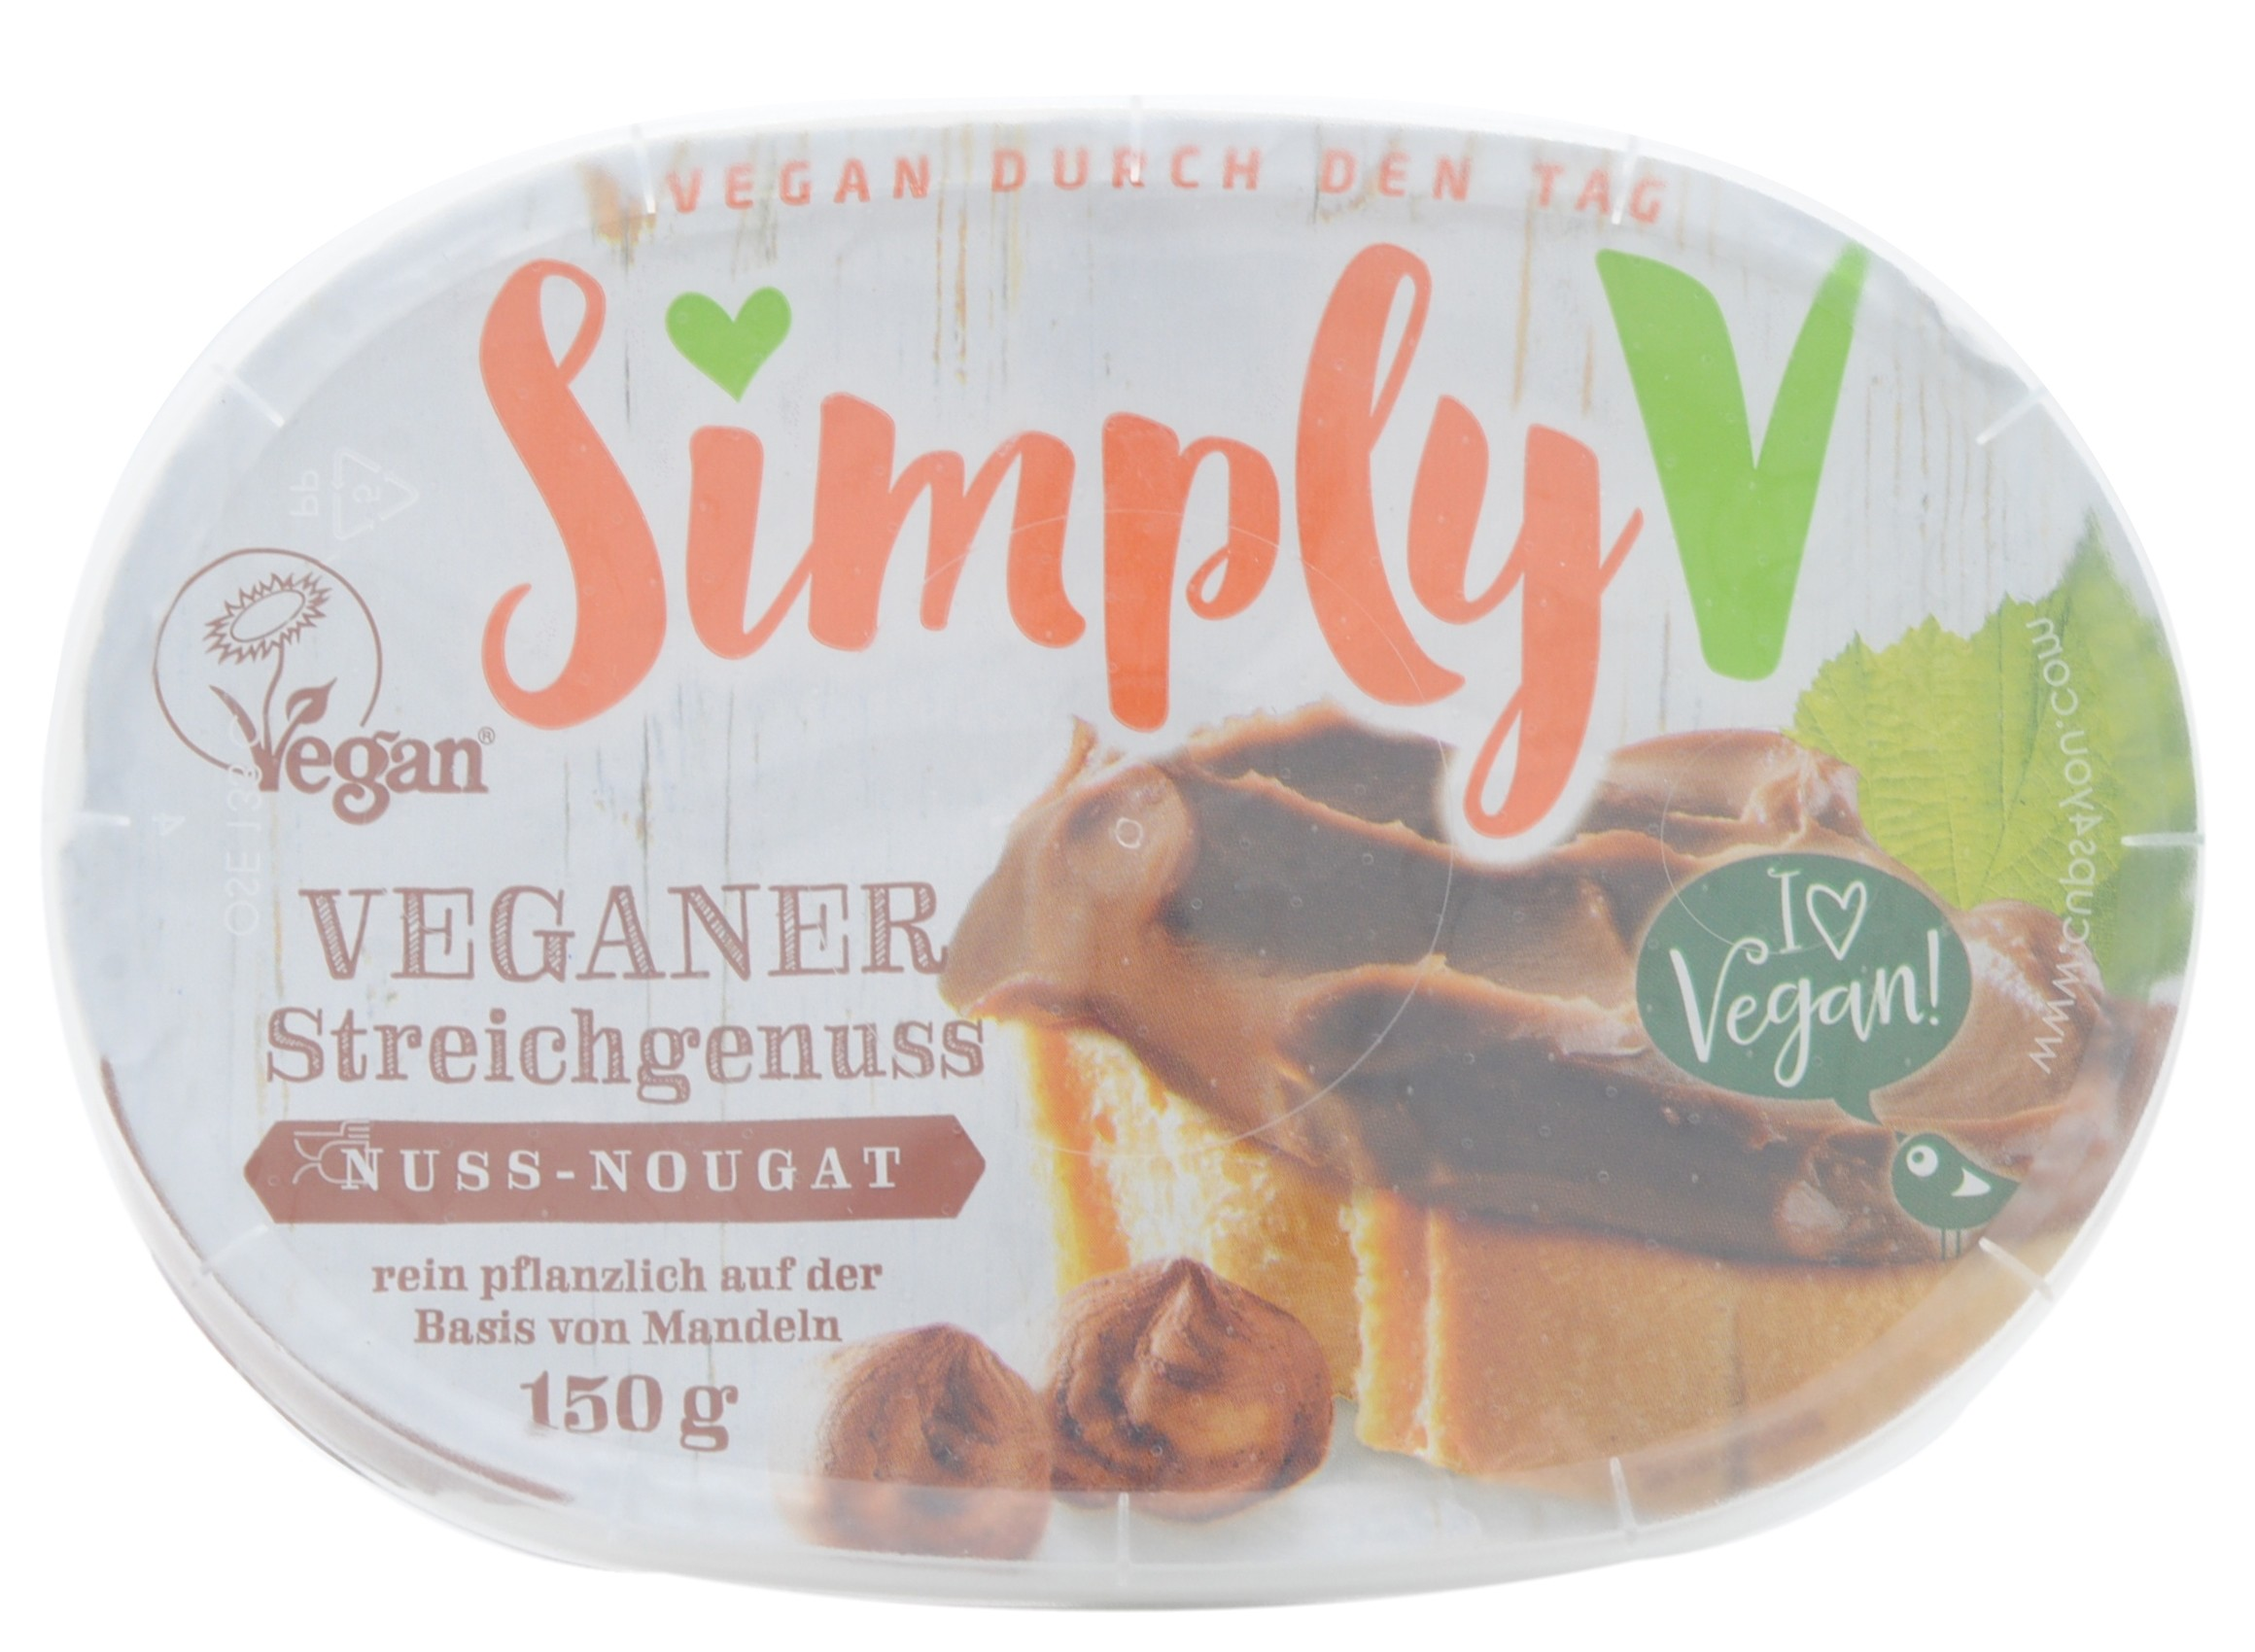 Nut-Nougat Vegan Spread